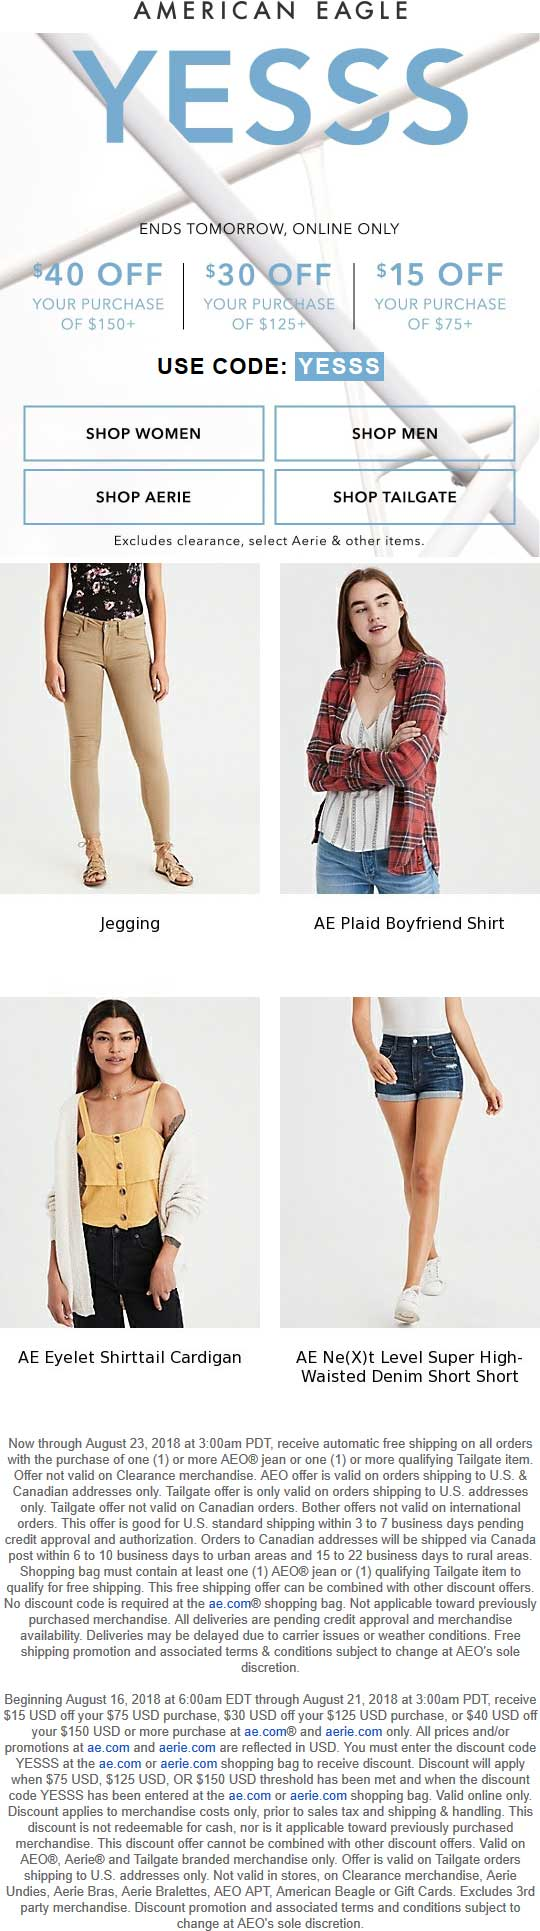 American Eagle Coupon November 2019 $15 off $75 & more online at American Eagle via promo code YESSS